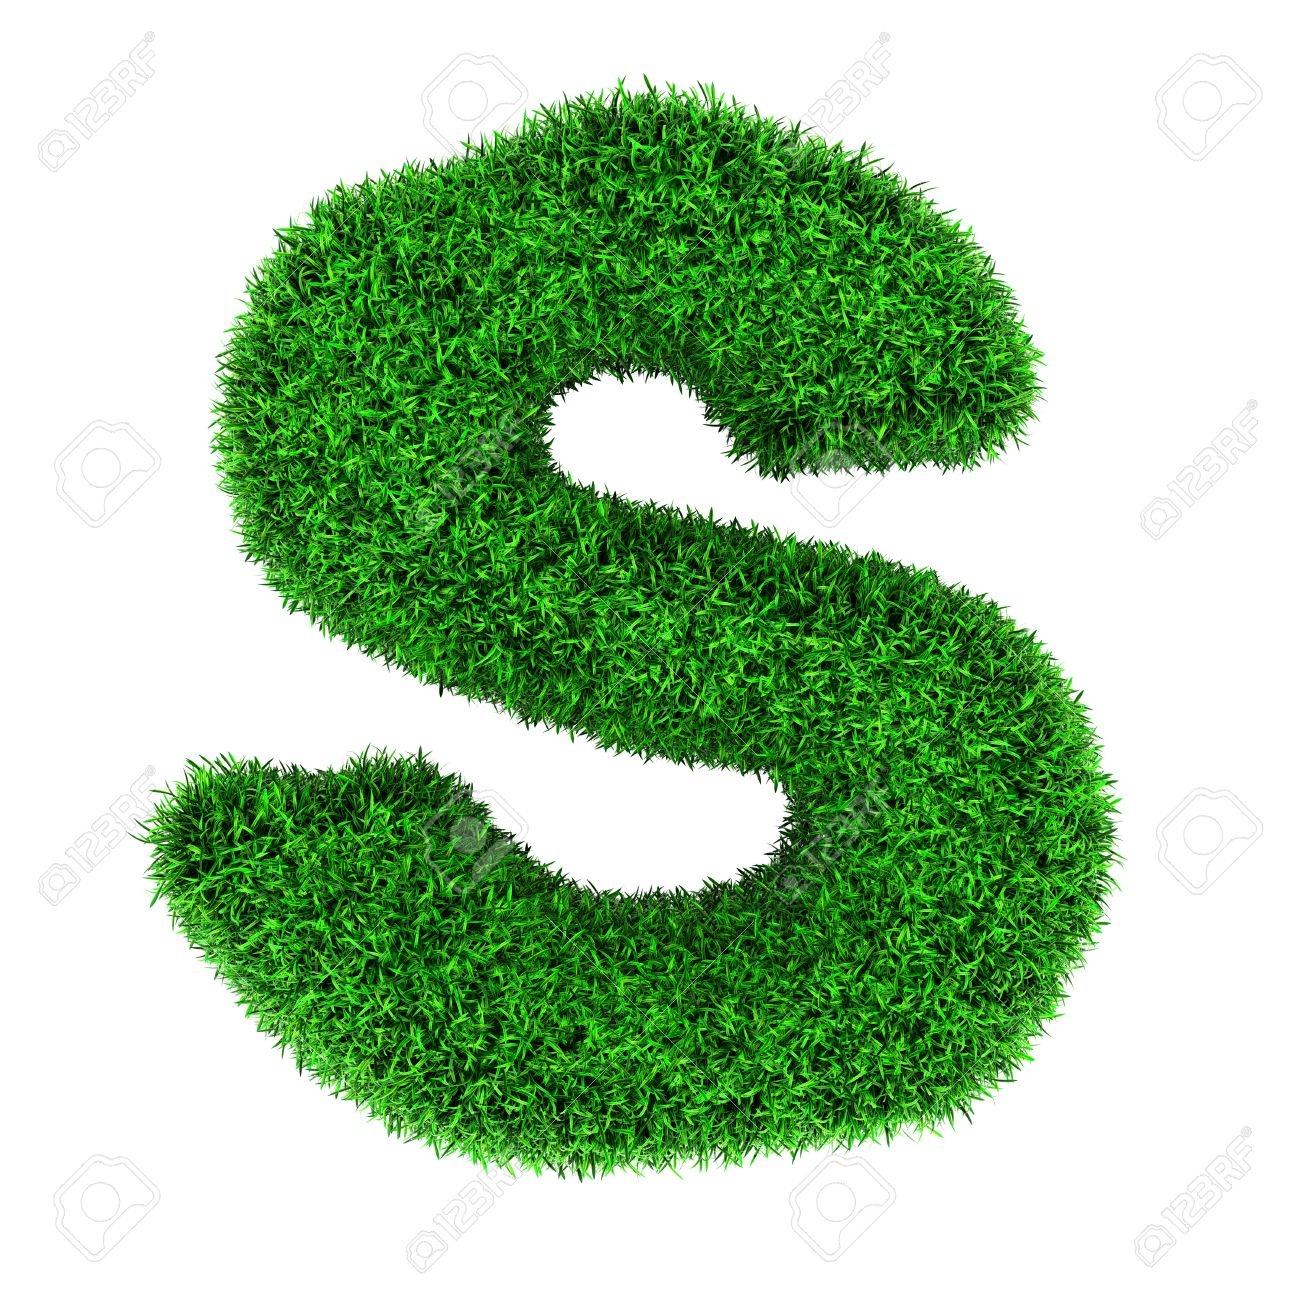 Letter S Made Of Grass Isolated On White Background Stock Photo